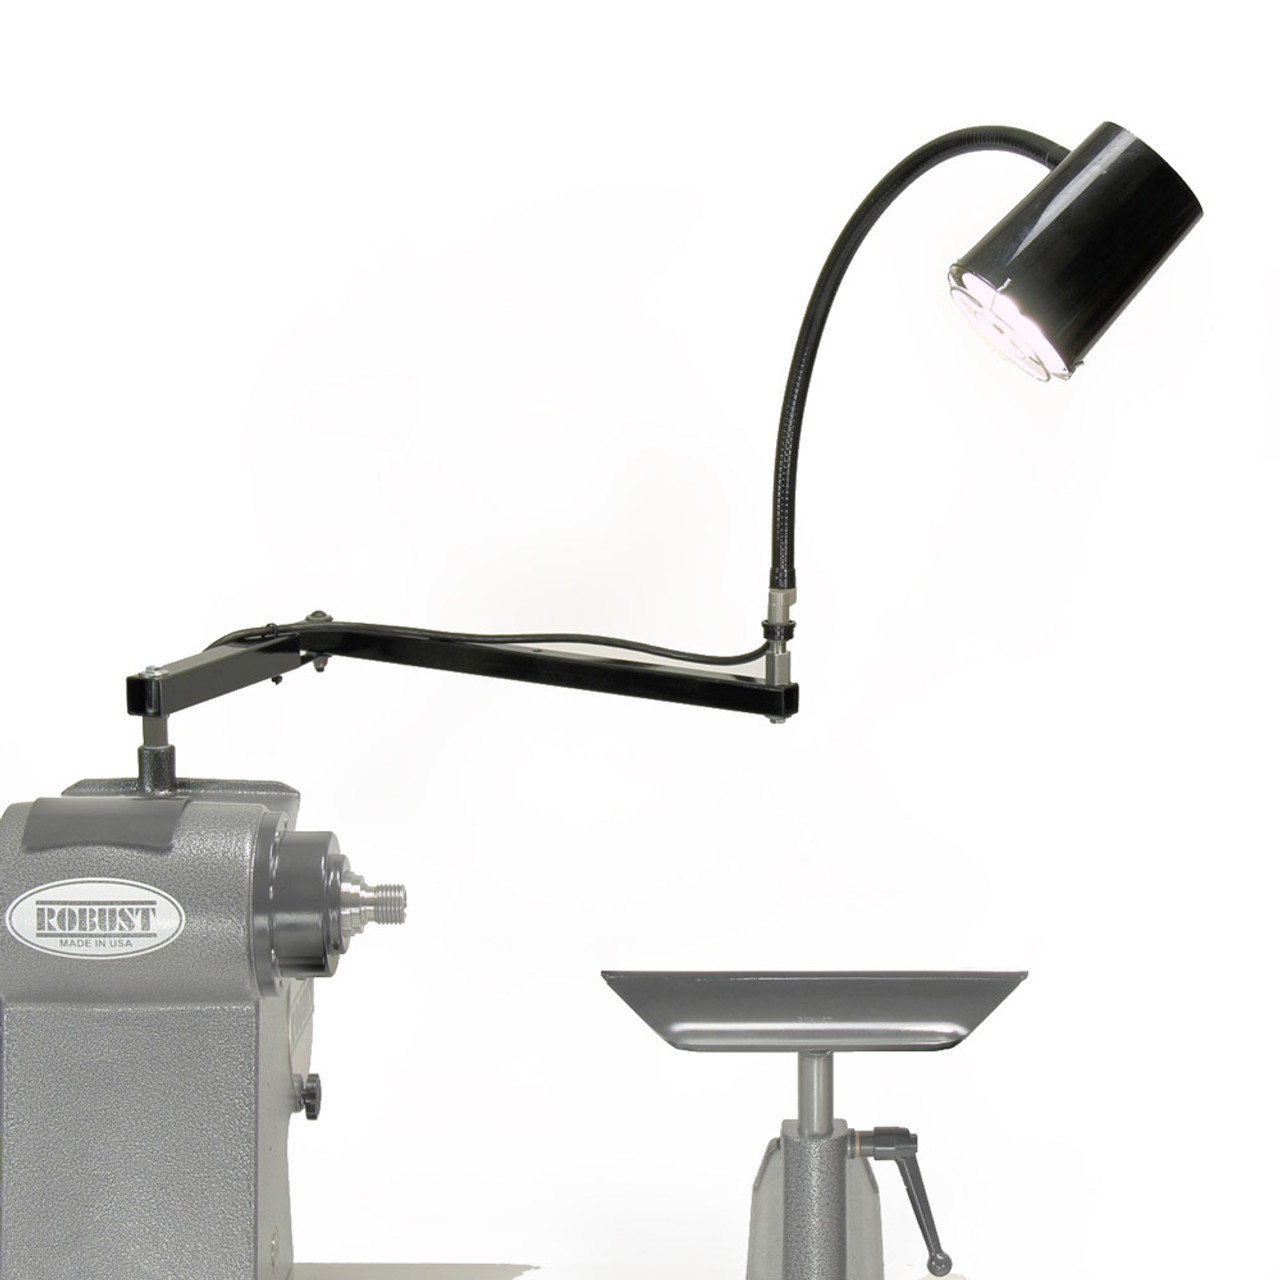 Robust Lamp Set / Bracket and One Fixture